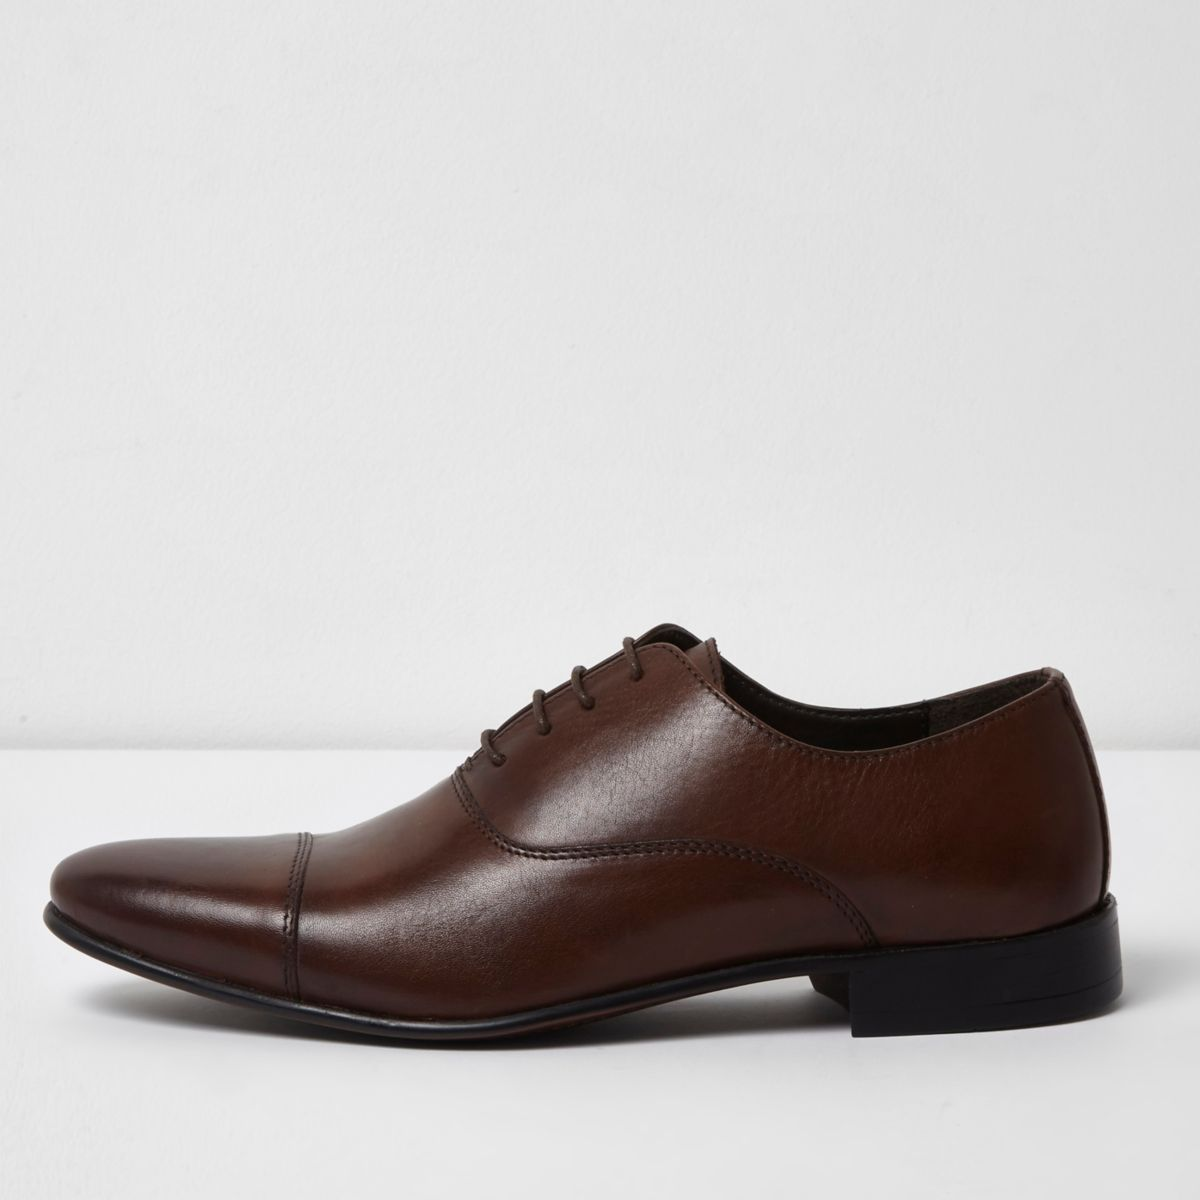 Men Shoes For a versatile men's shoe you can dress up or down, the collection of men's shoes from Timberland are an easy style choice for a modern man. Wear with chinos and a shirt to the office, or with jeans and a crew-neck jumper at the weekend for a classic smart-casual look.